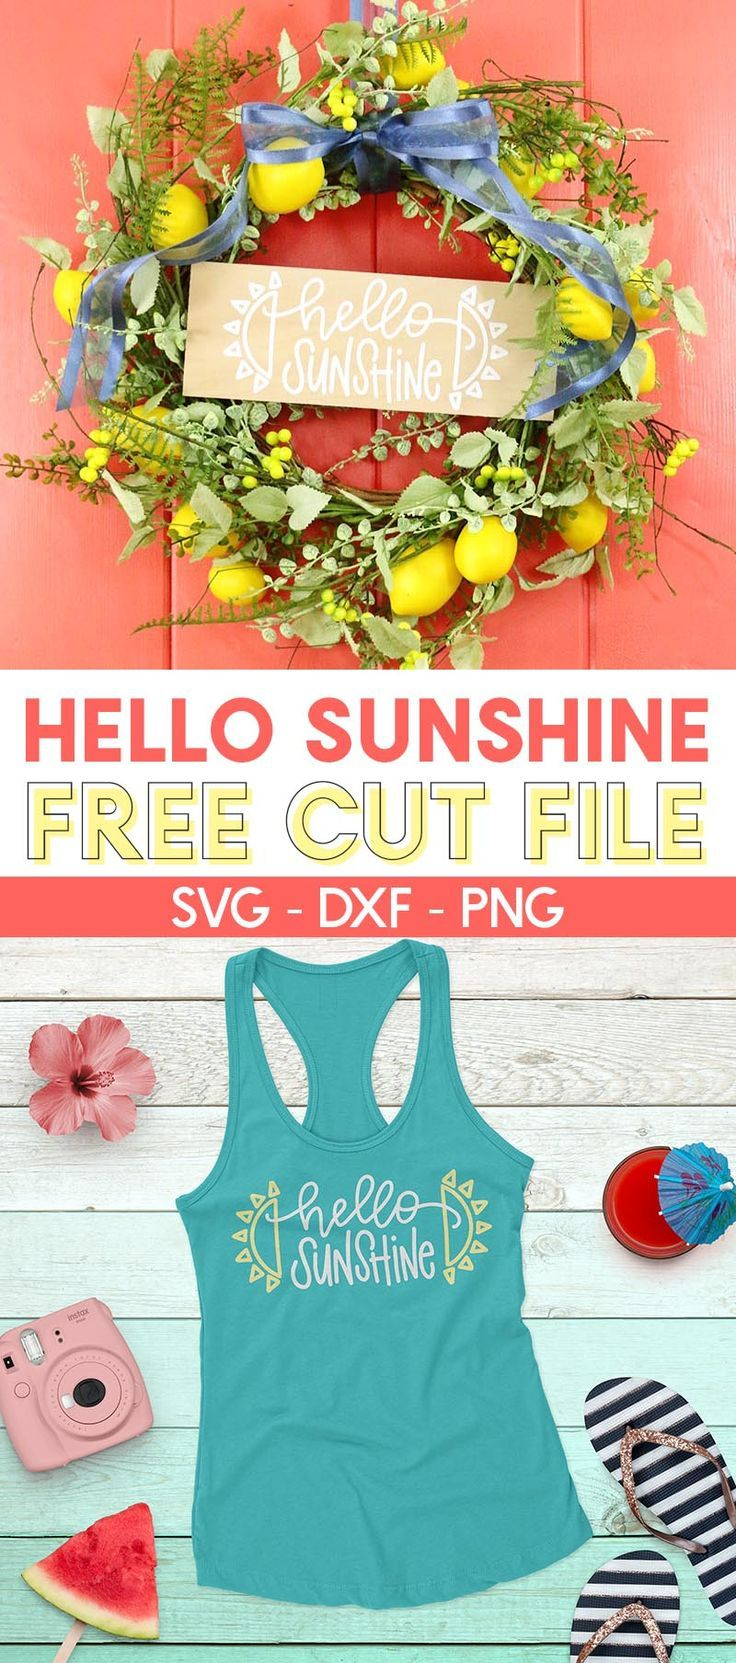 Pin on Cricut SVGs and Cut Files